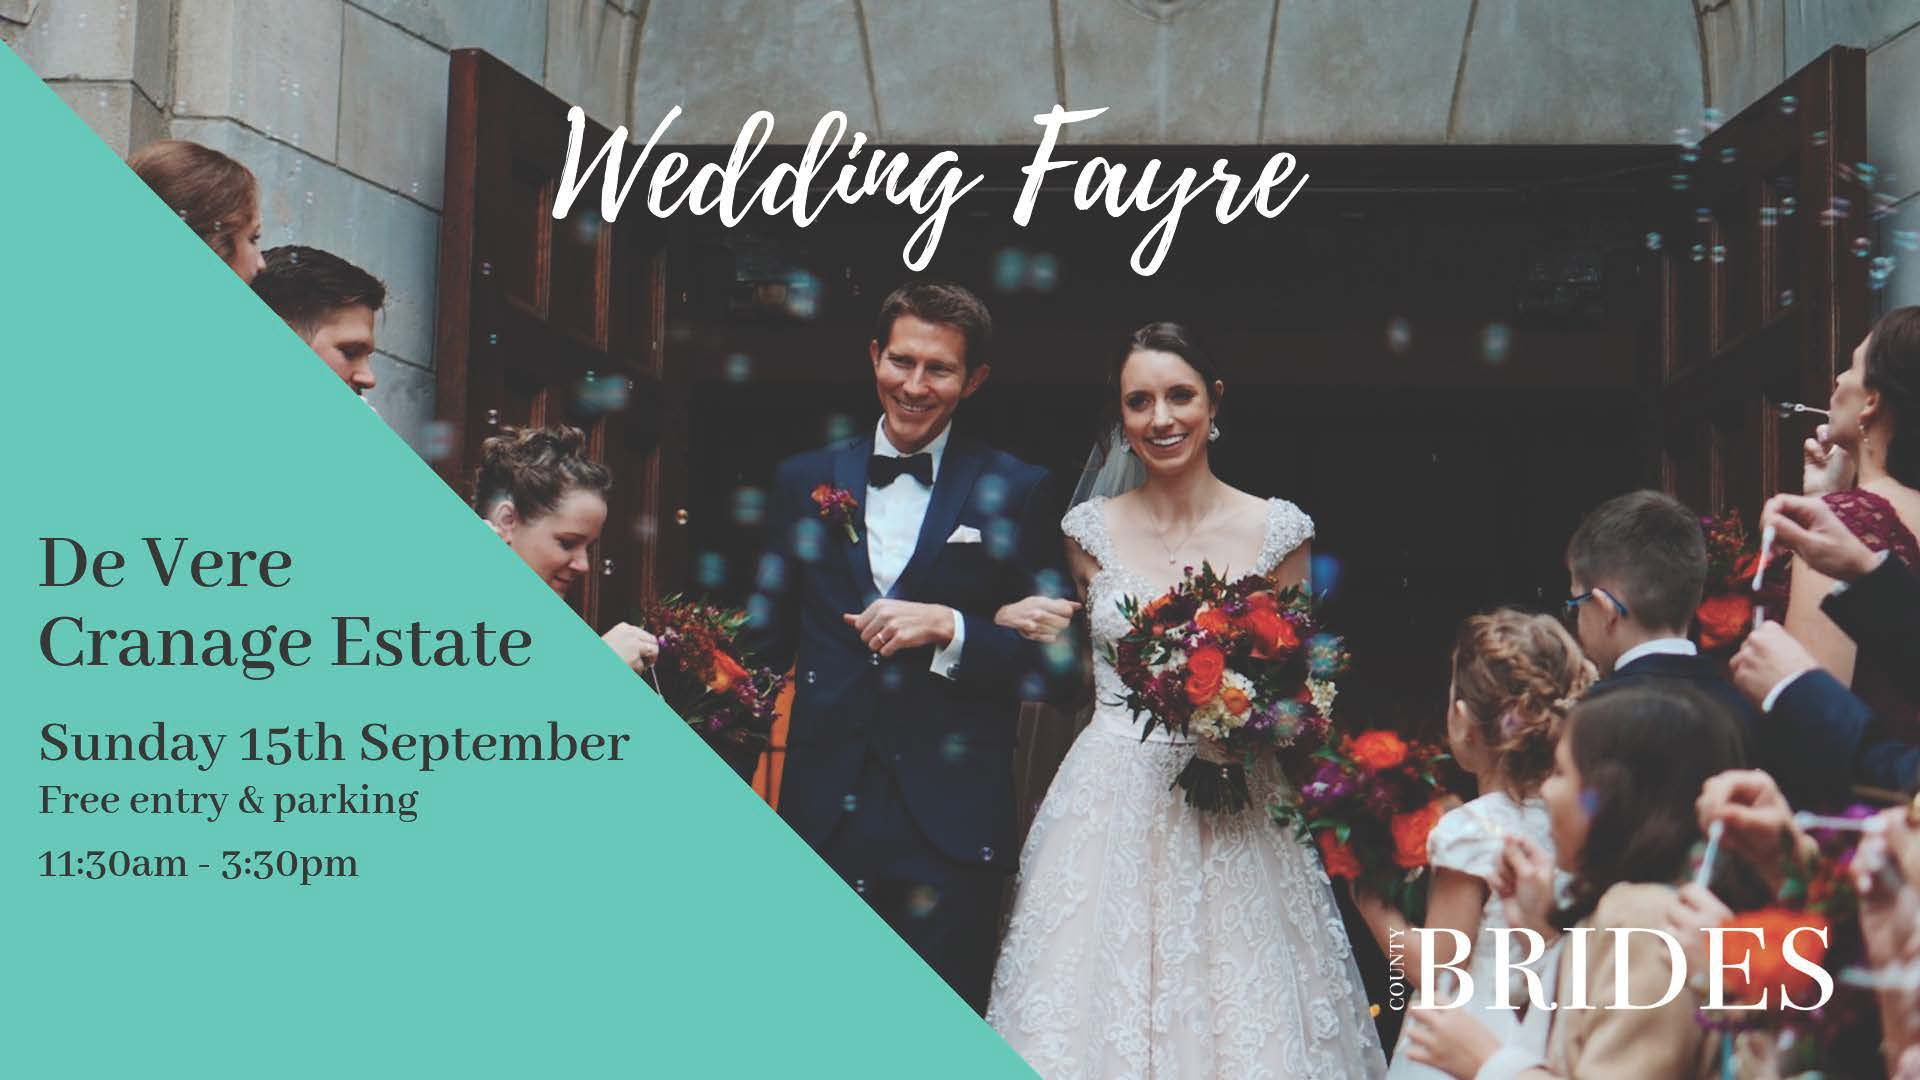 De Vere Cranage Estate Wedding Fayre